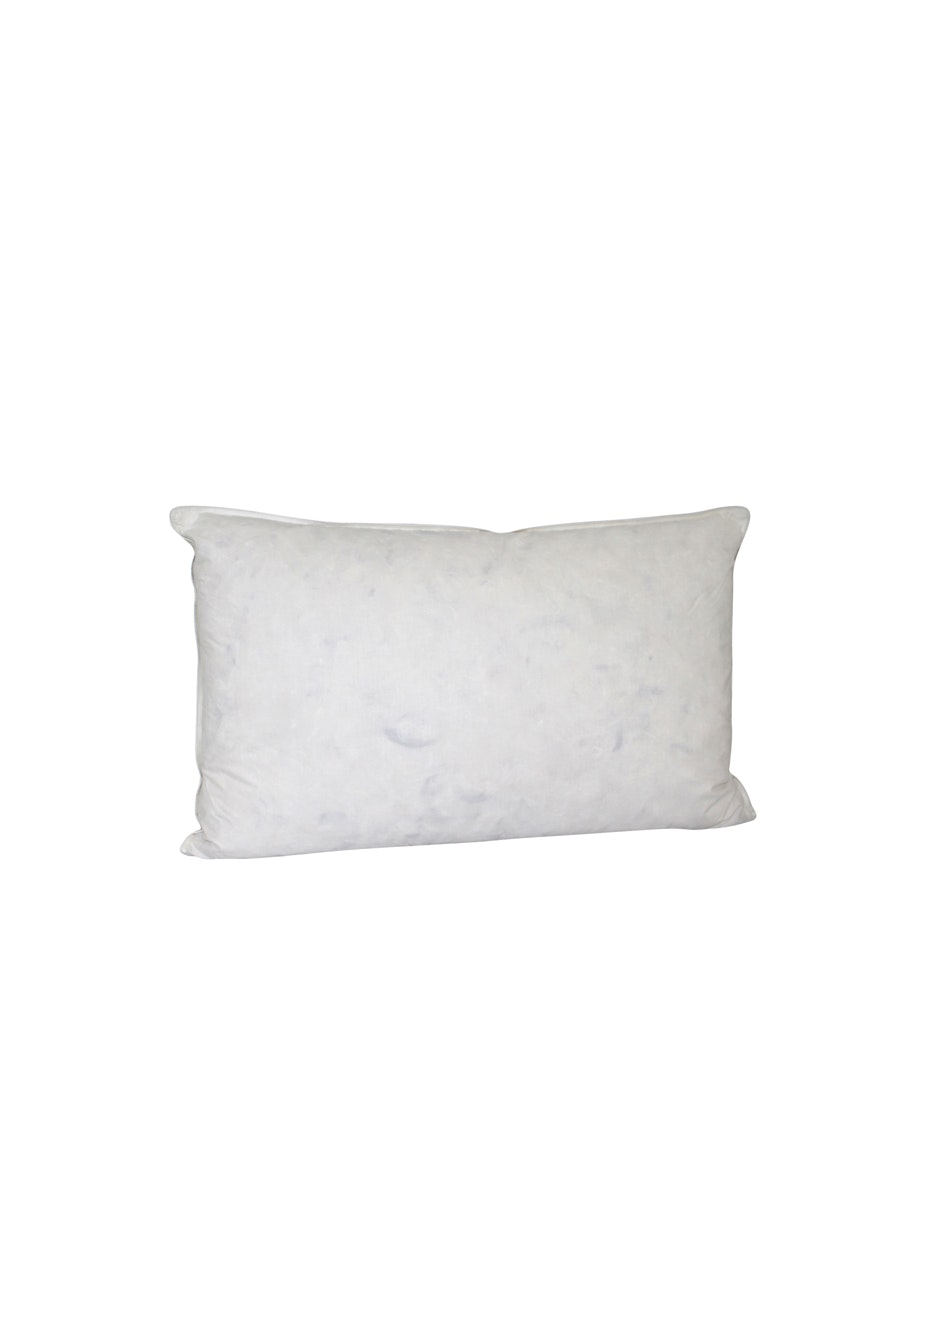 100% Duck Feather Pillow with Cotton Cover